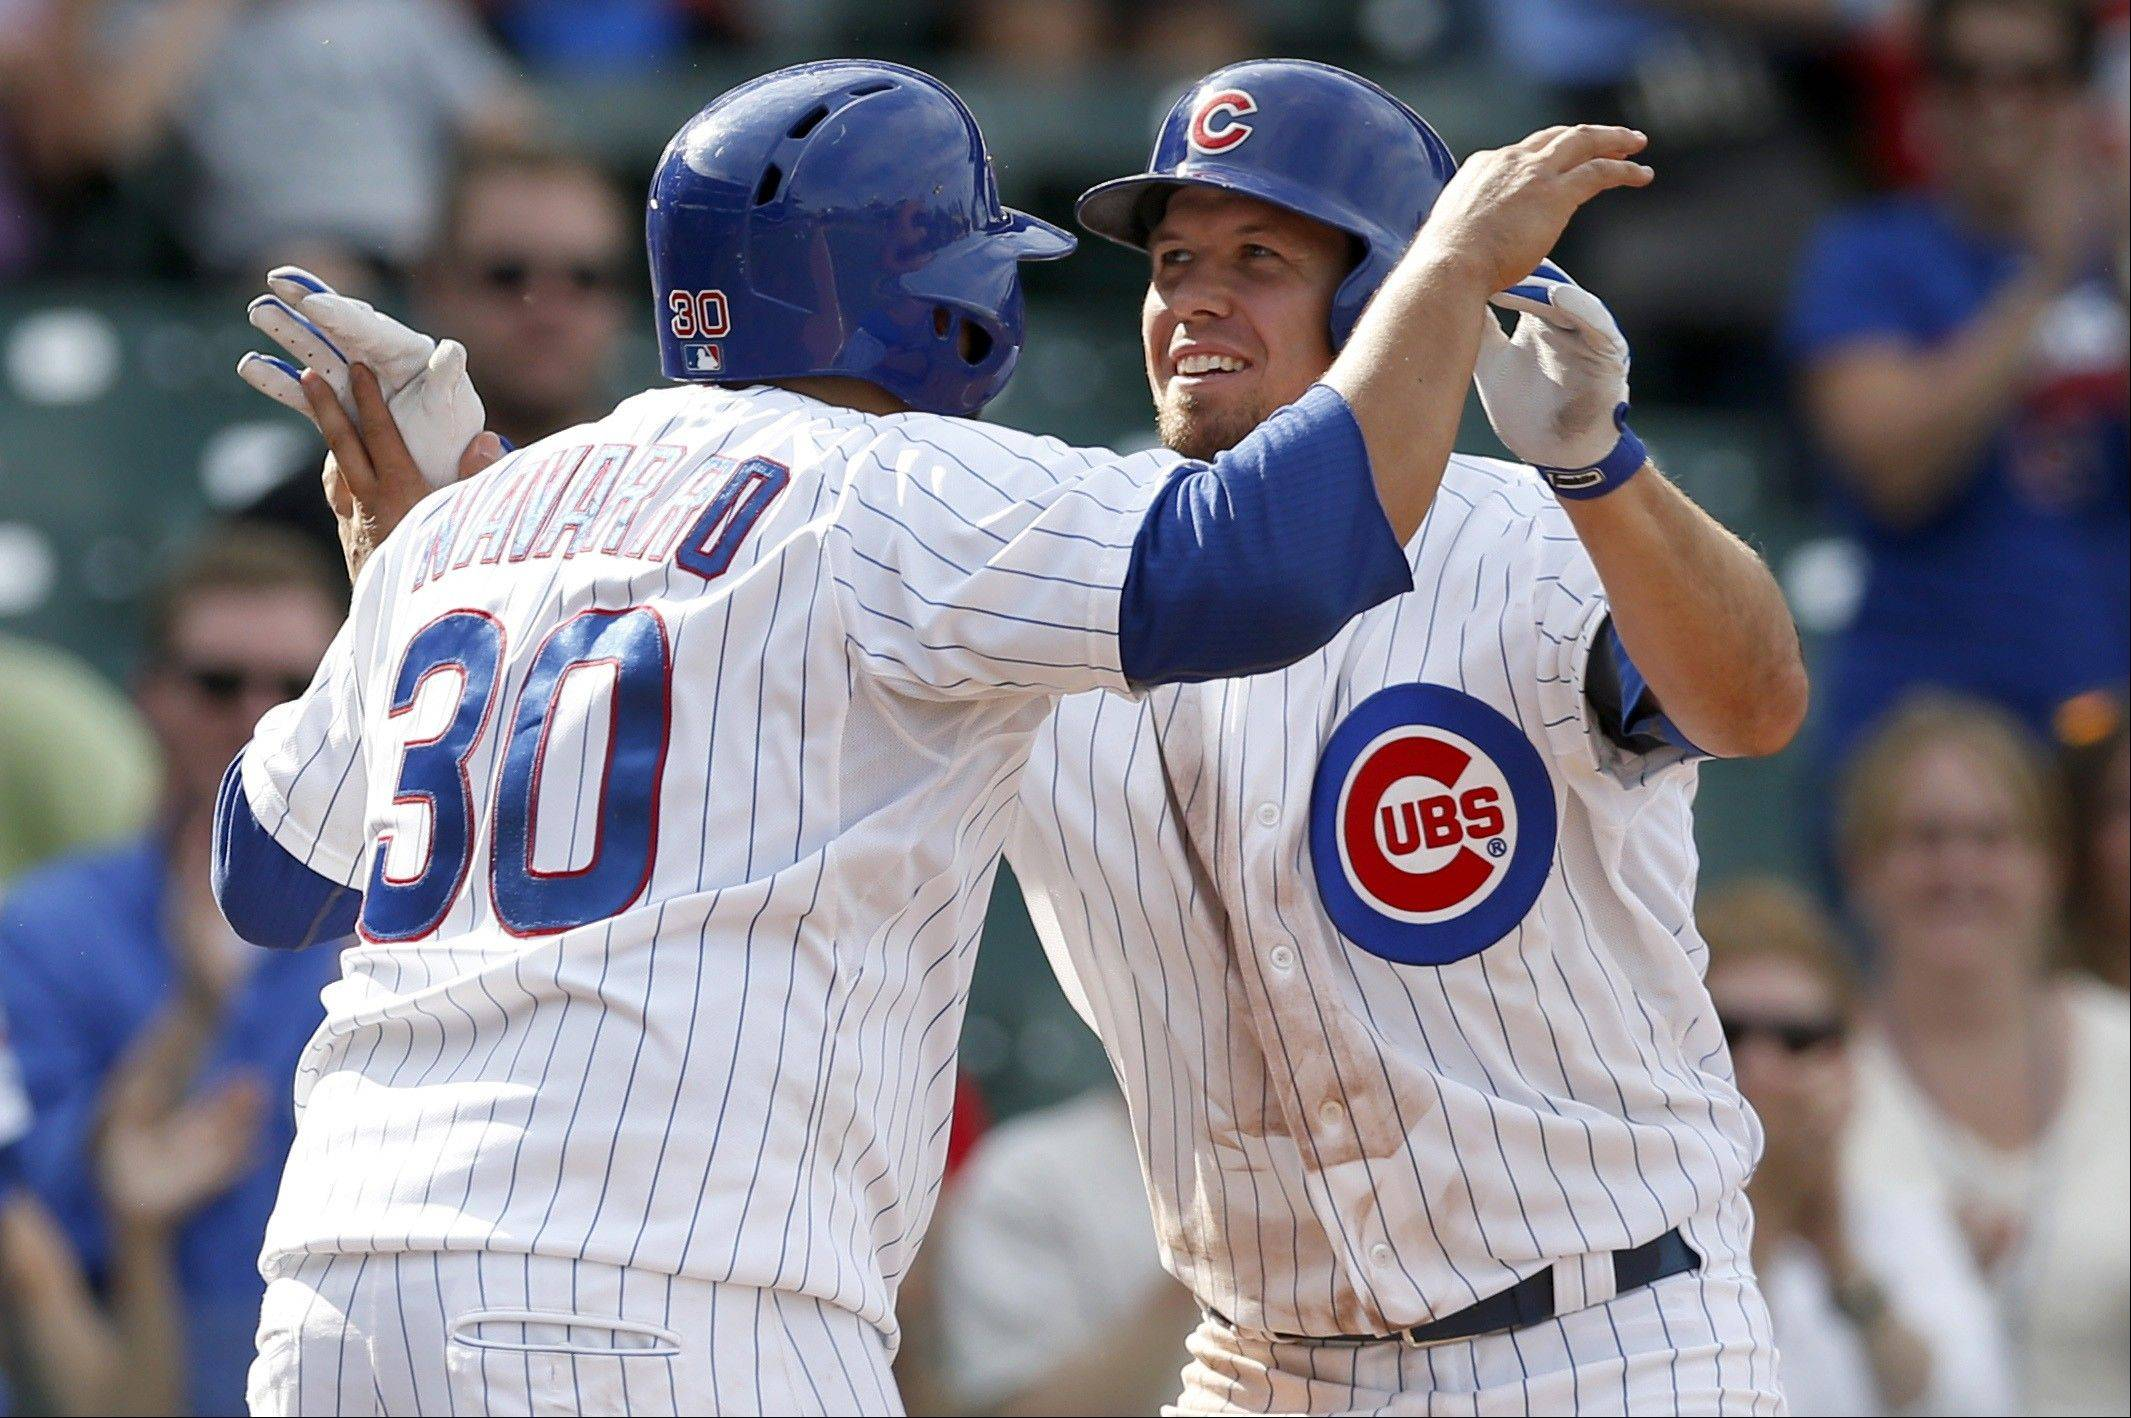 The Cubs� Dioner Navarro (30) and Donnie Murphy celebrate after the pair scored on Murphy�s home run hit off Miami Marlins relief pitcher Ryan Webb during Wednesday�s game at Wrigley Field.